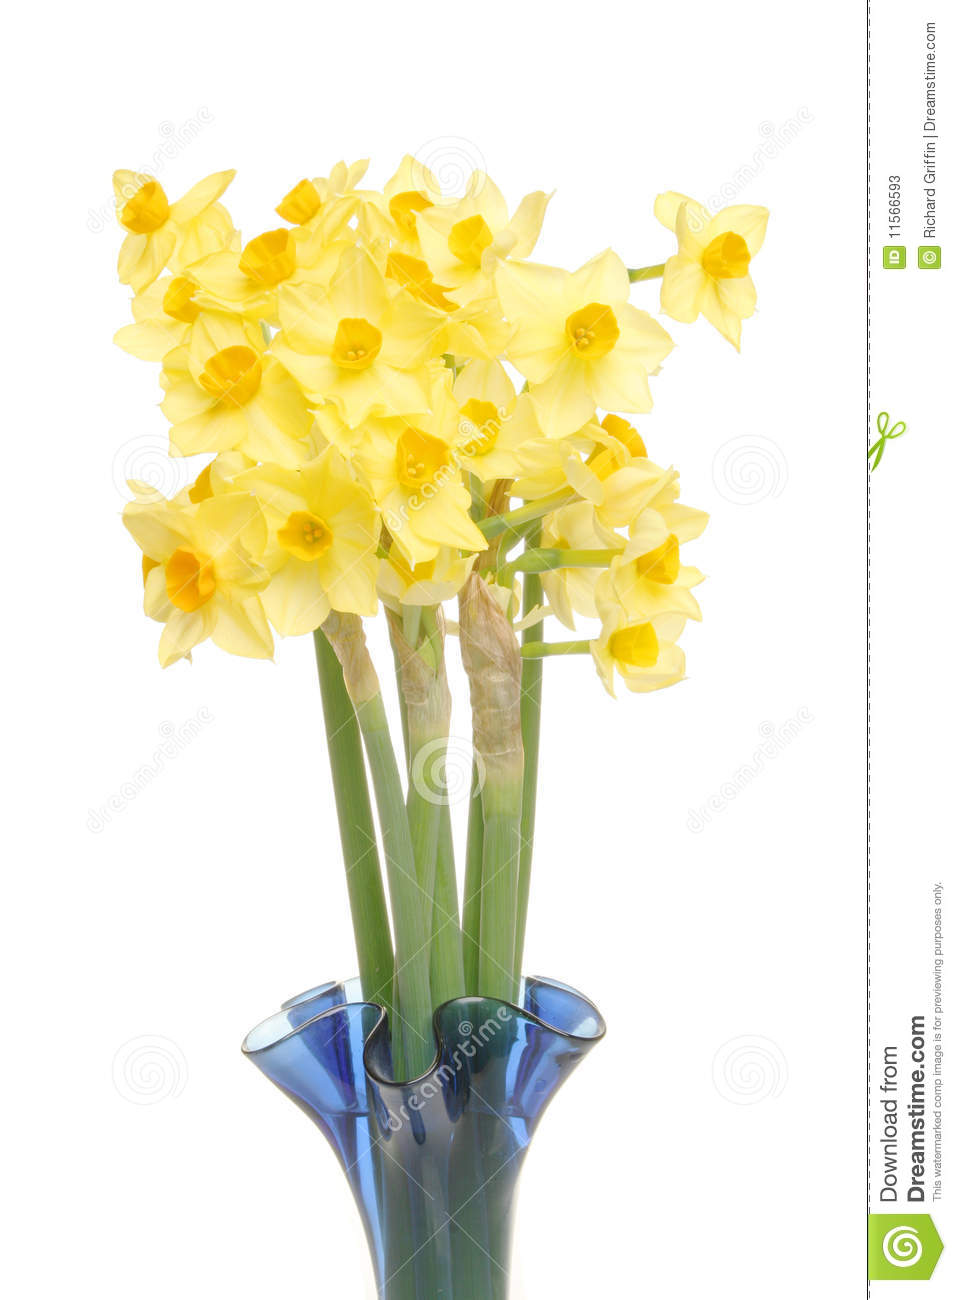 Daffodils In A Vase Stock Photos Image 11566593